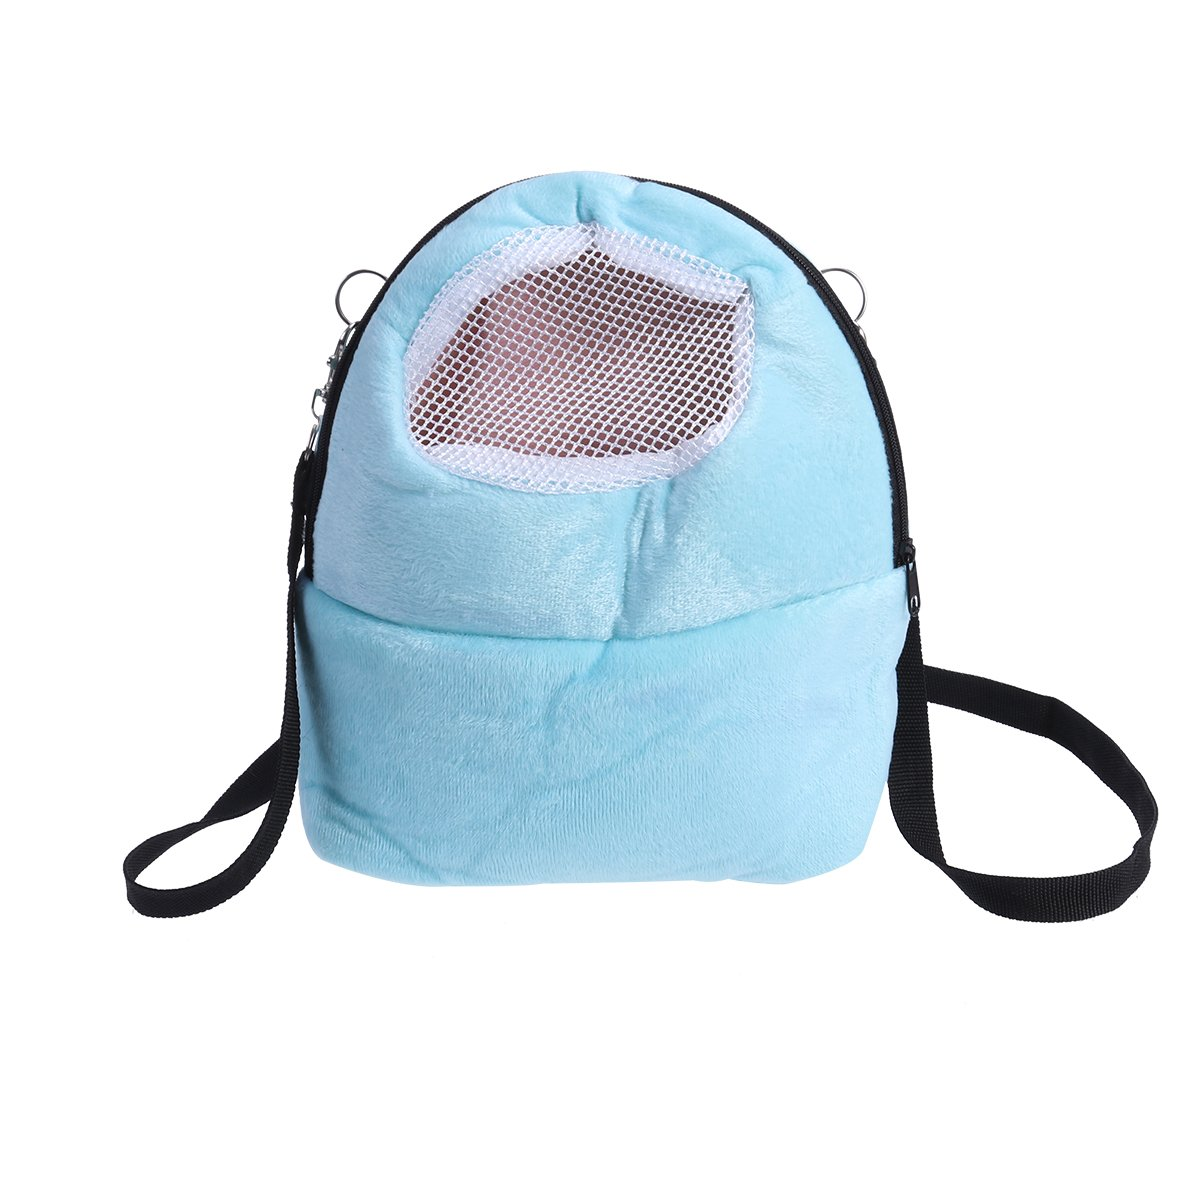 UEETEK Pet Carrier Bag Hamster Portable Breathable Outgoing Bag for Small Pets Size L (Blue)